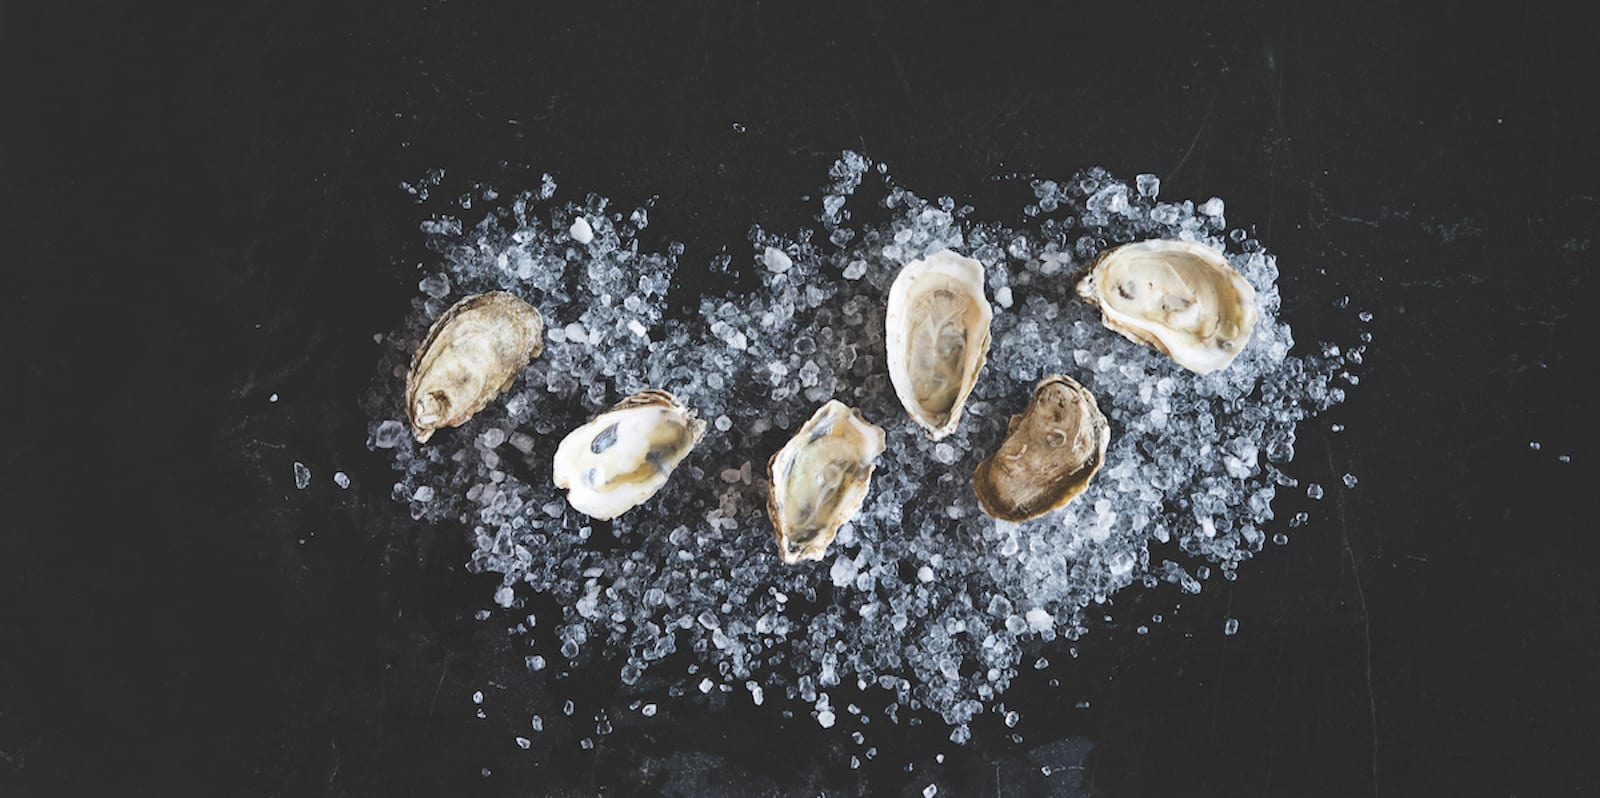 Easy Does It: Oysters